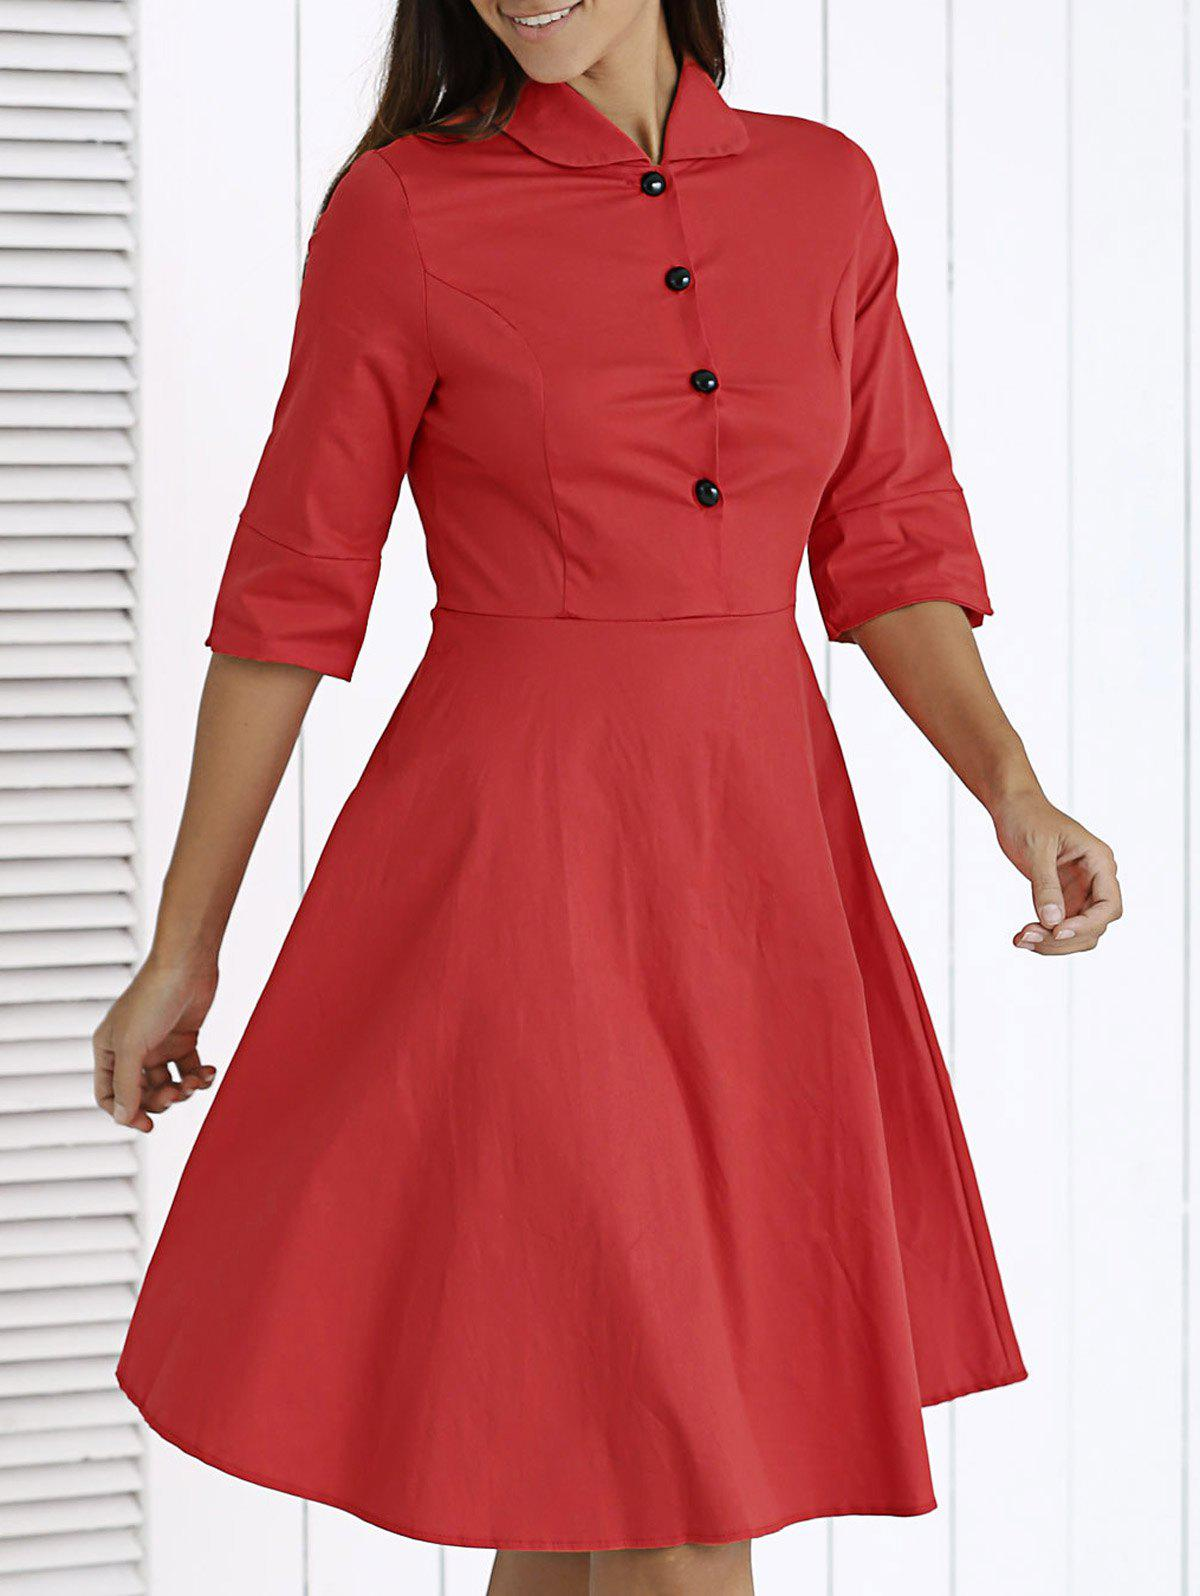 Chic Button-Up Solid Color Flare Dress For Women - RED 2XL